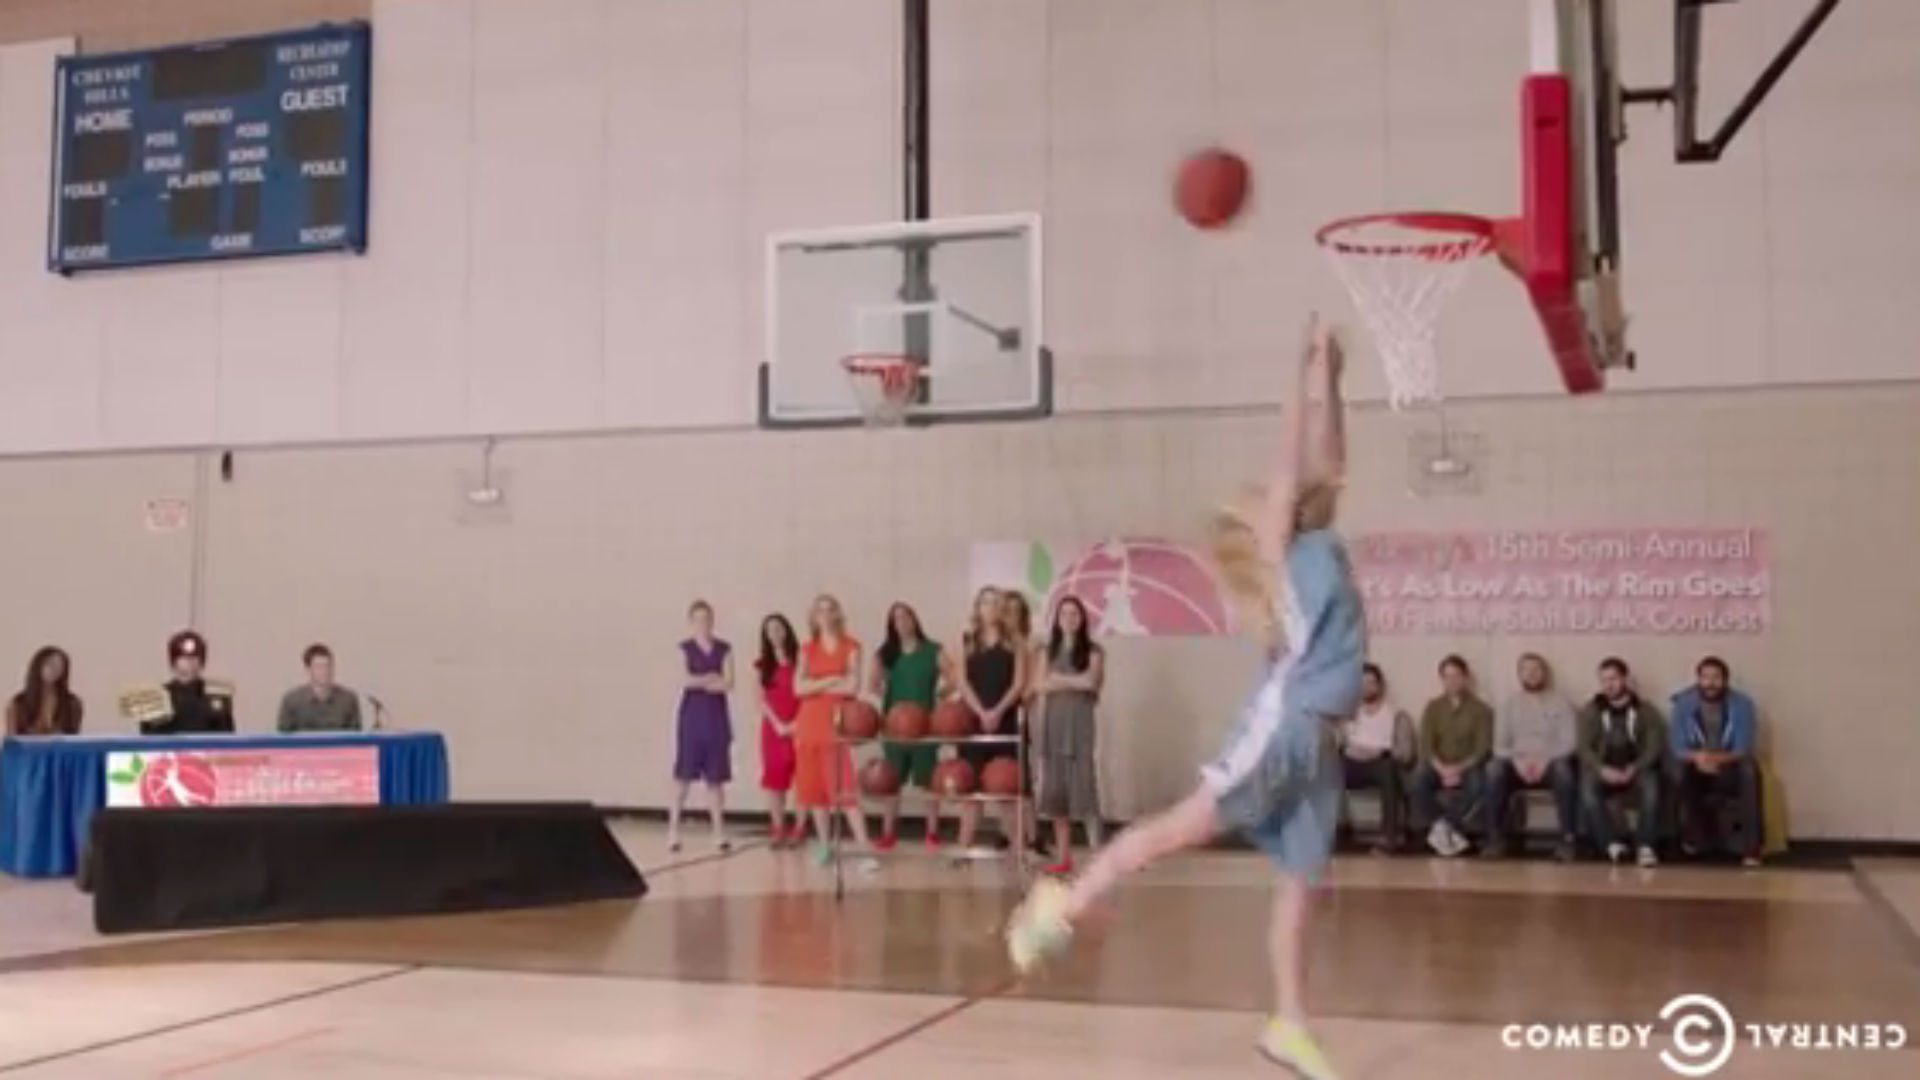 Tosh.0 hosts hilariously terrible girl dunk contest